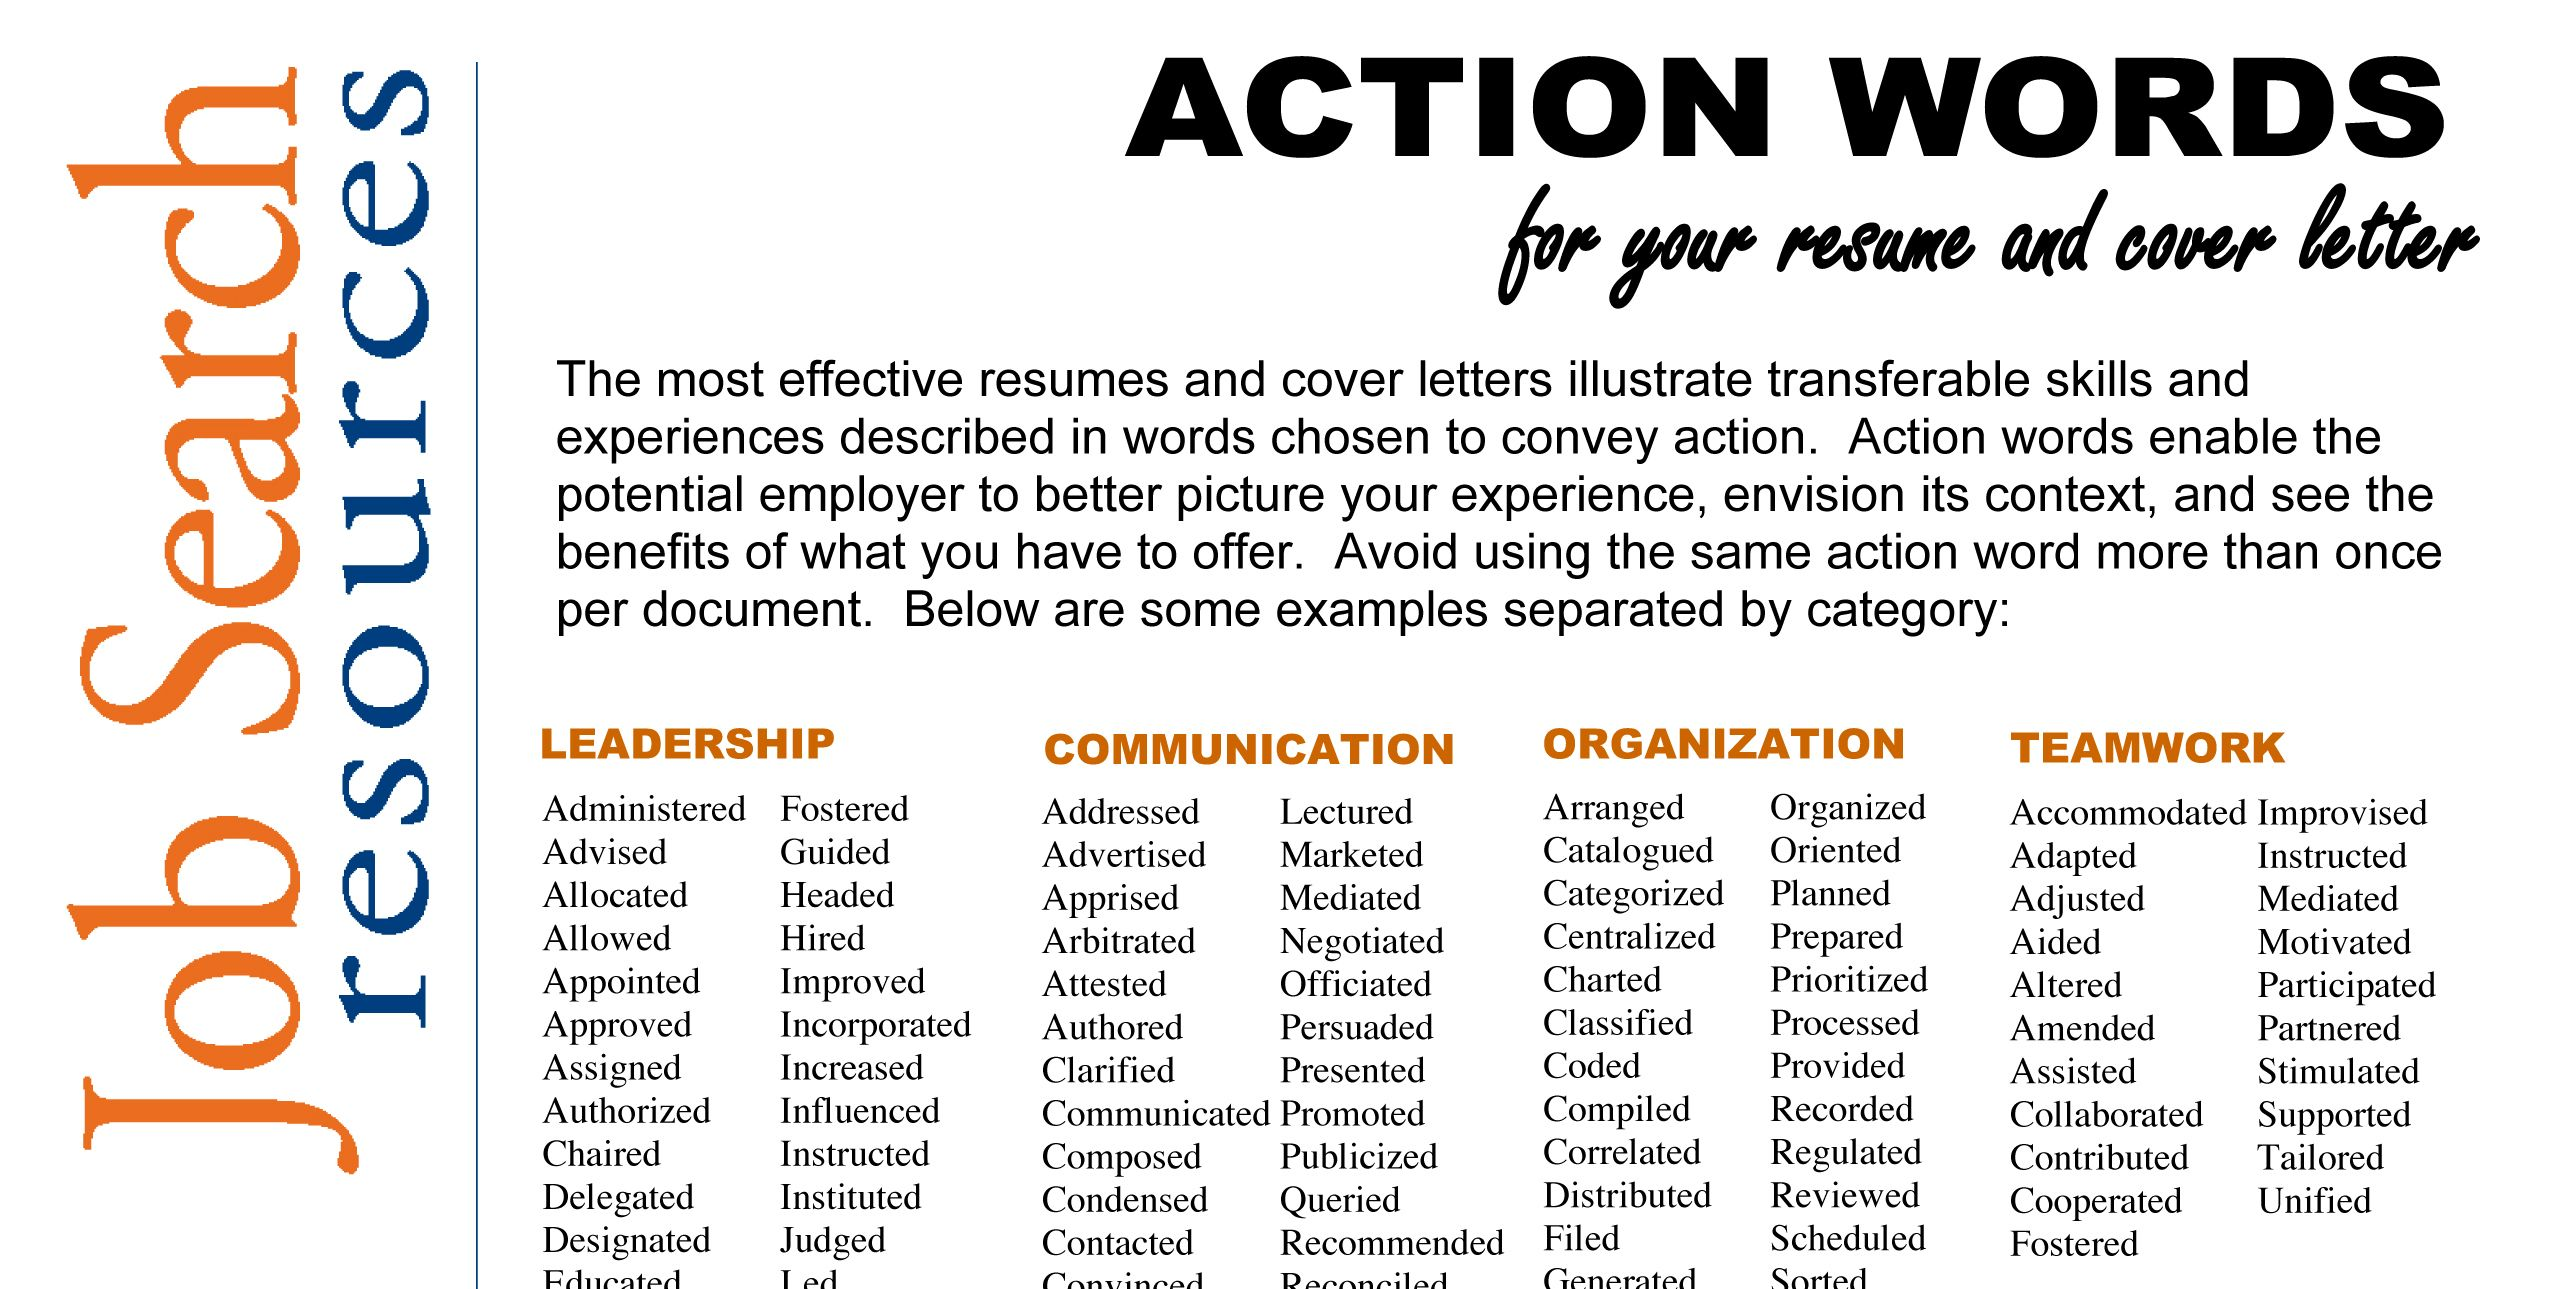 Are you using action words for your resume? Here's a list